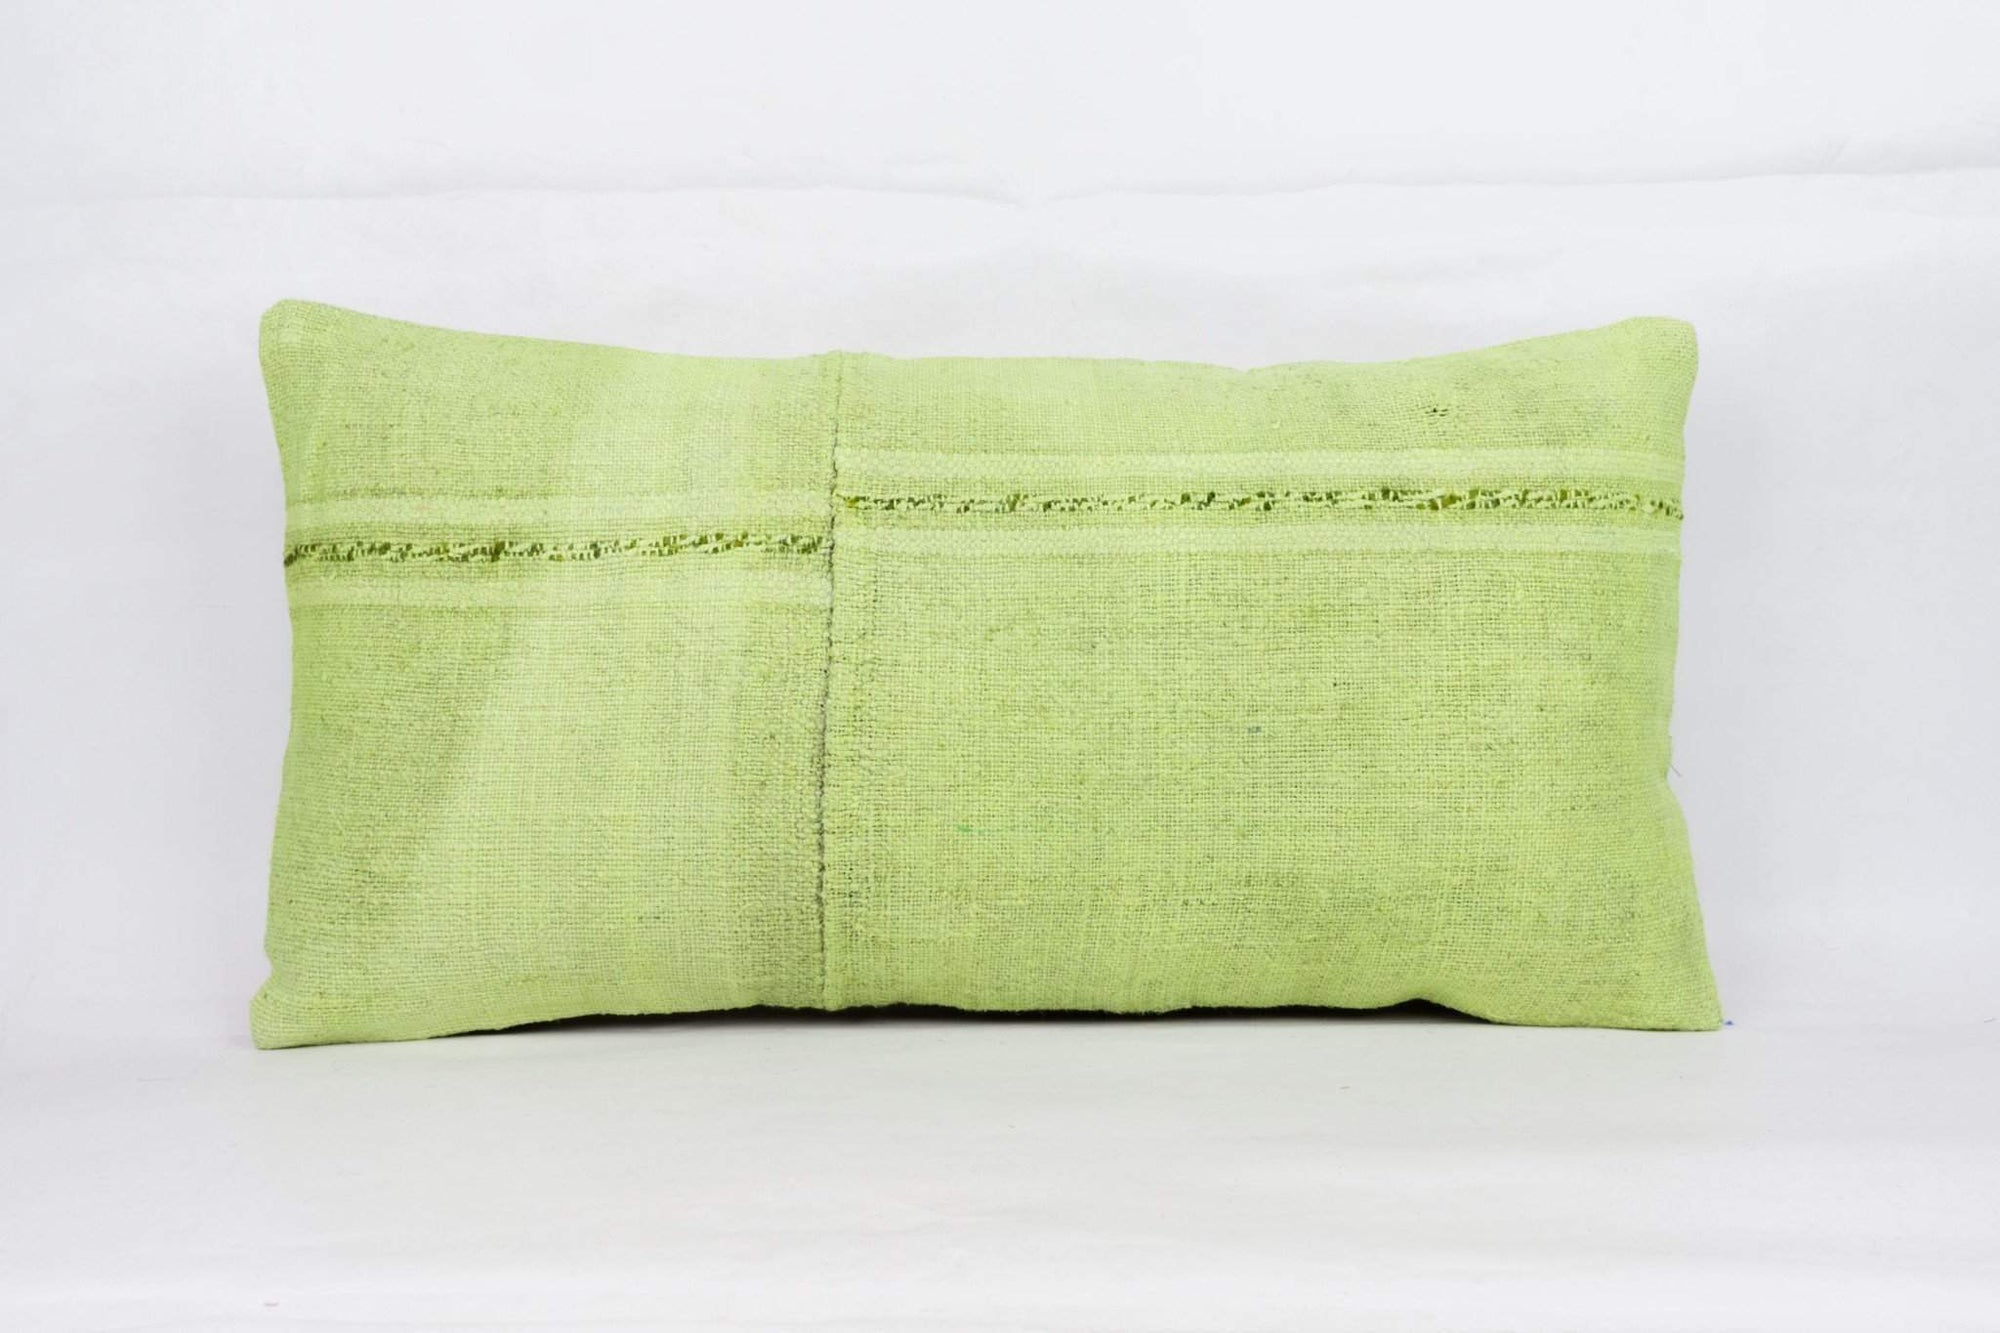 Plain Green Kilim Pillow Cover 12x24 4129 - kilimpillowstore  - 1